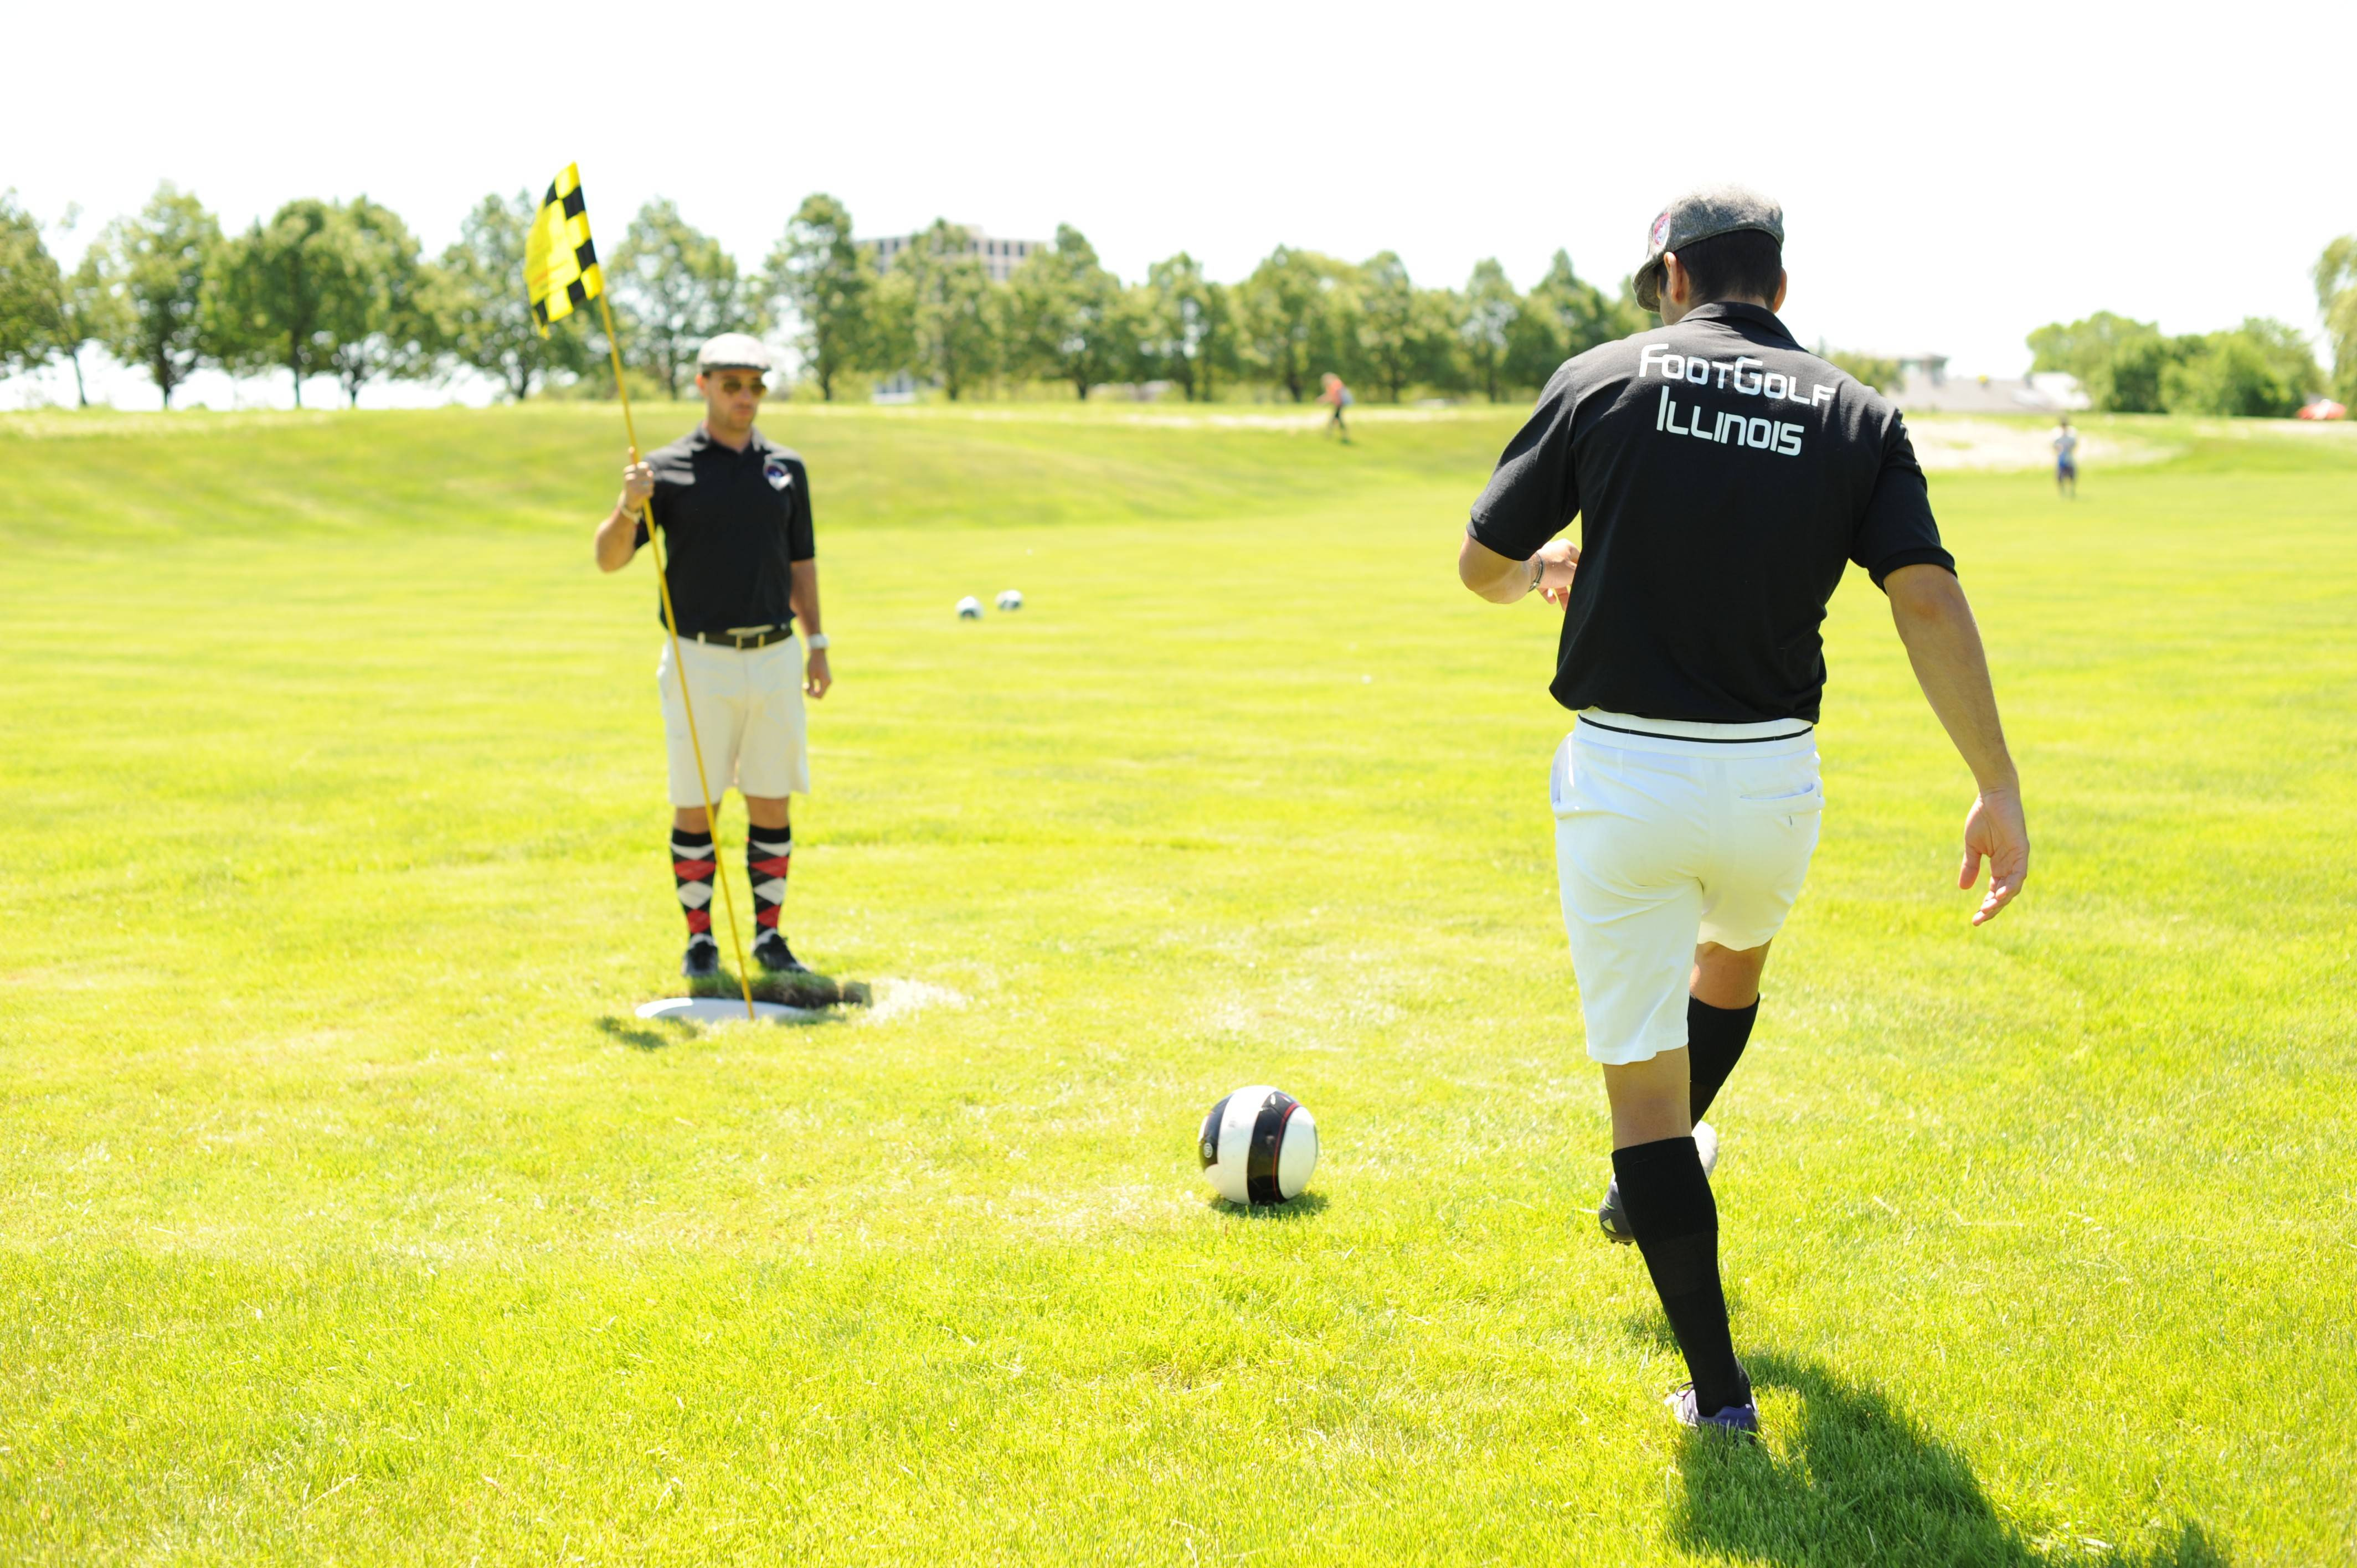 FootGolf is growing across the suburbs as several golf courses have begun offering this soccer-infused twist on traditional golf. FootGolf will begin at Naperville Park District's Naperbrook Golf Course with a tournament today.